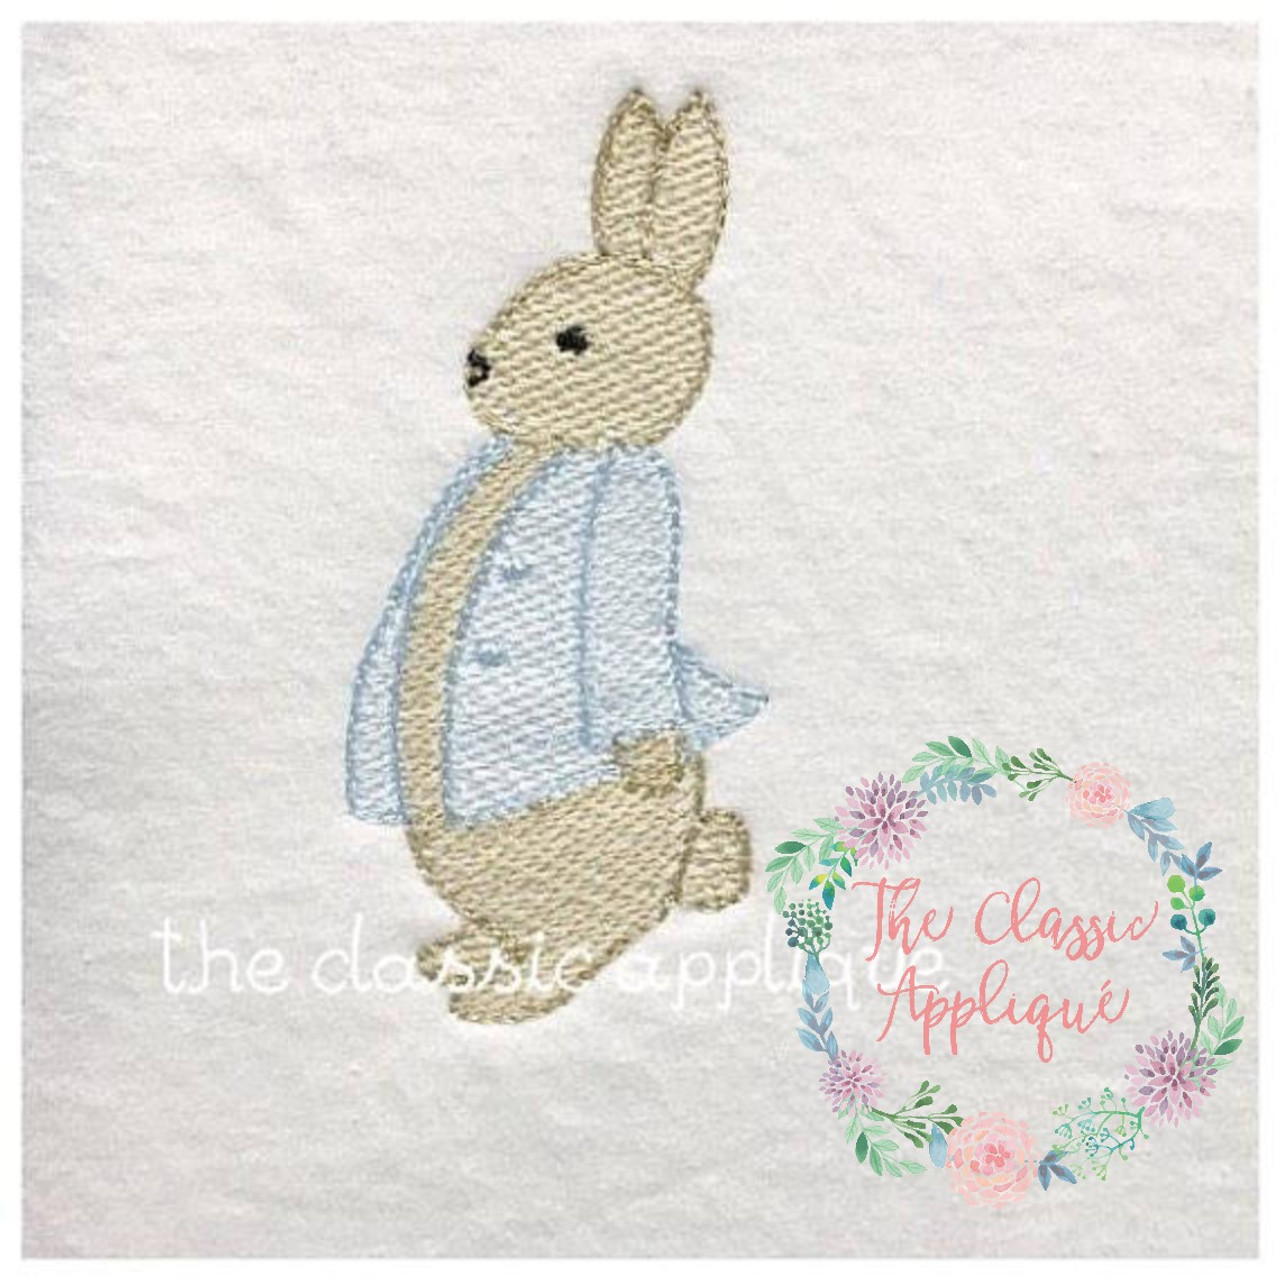 Applique Classe 2 Combined Vintage Stitch And Sketch Fill Bunny With Jacket